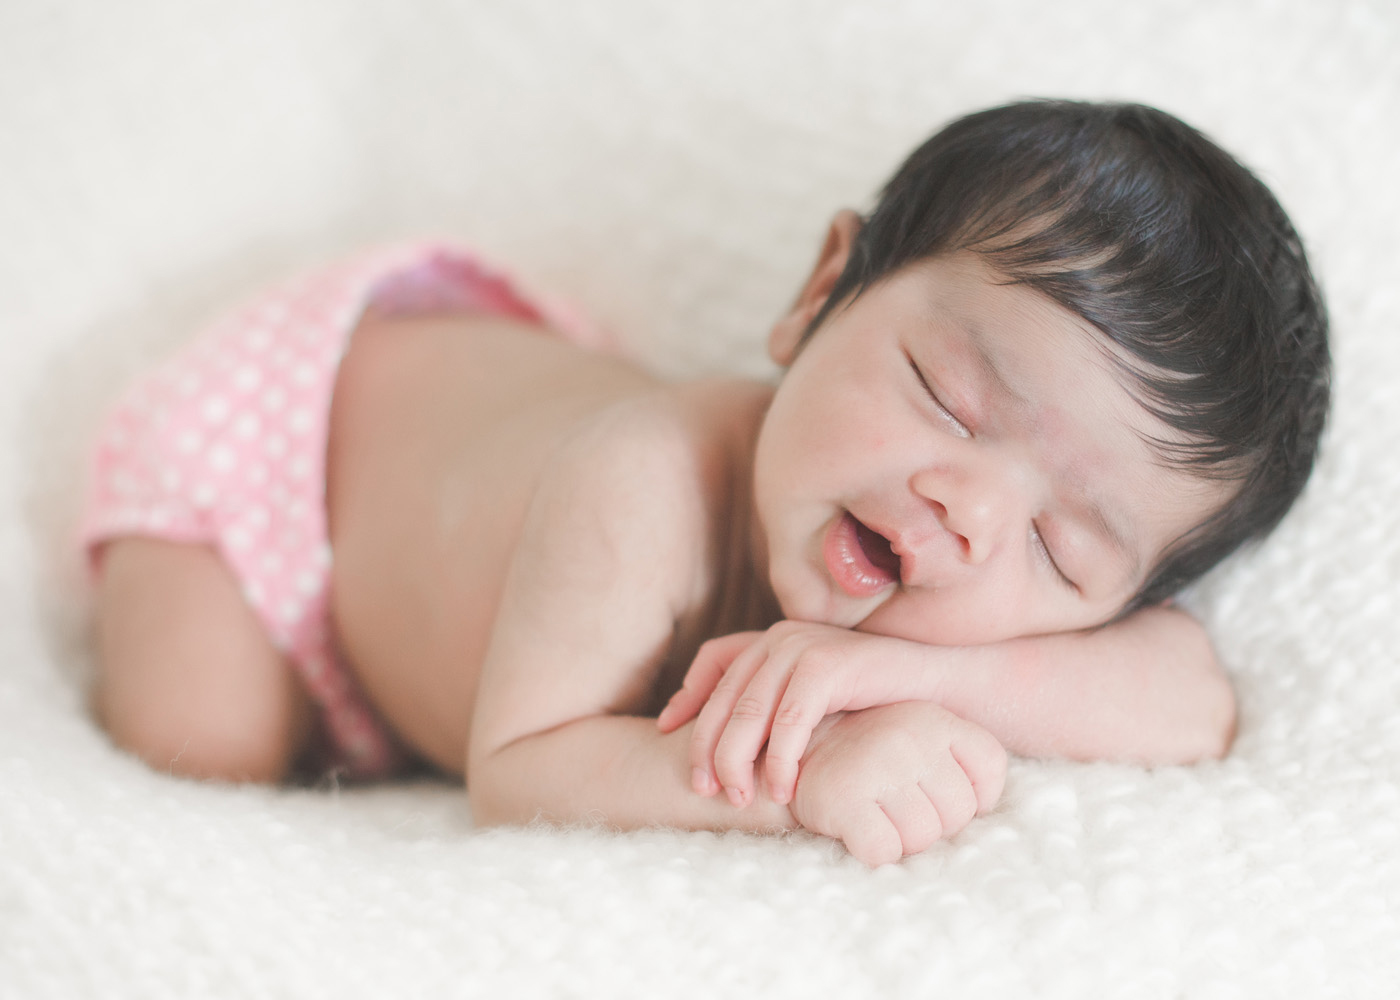 Newborn Care A newborn baby can feel small and fragile. Learn how to care for your newborn and find out what to do if your baby has colic, jaundice, or an umbilical hernia.